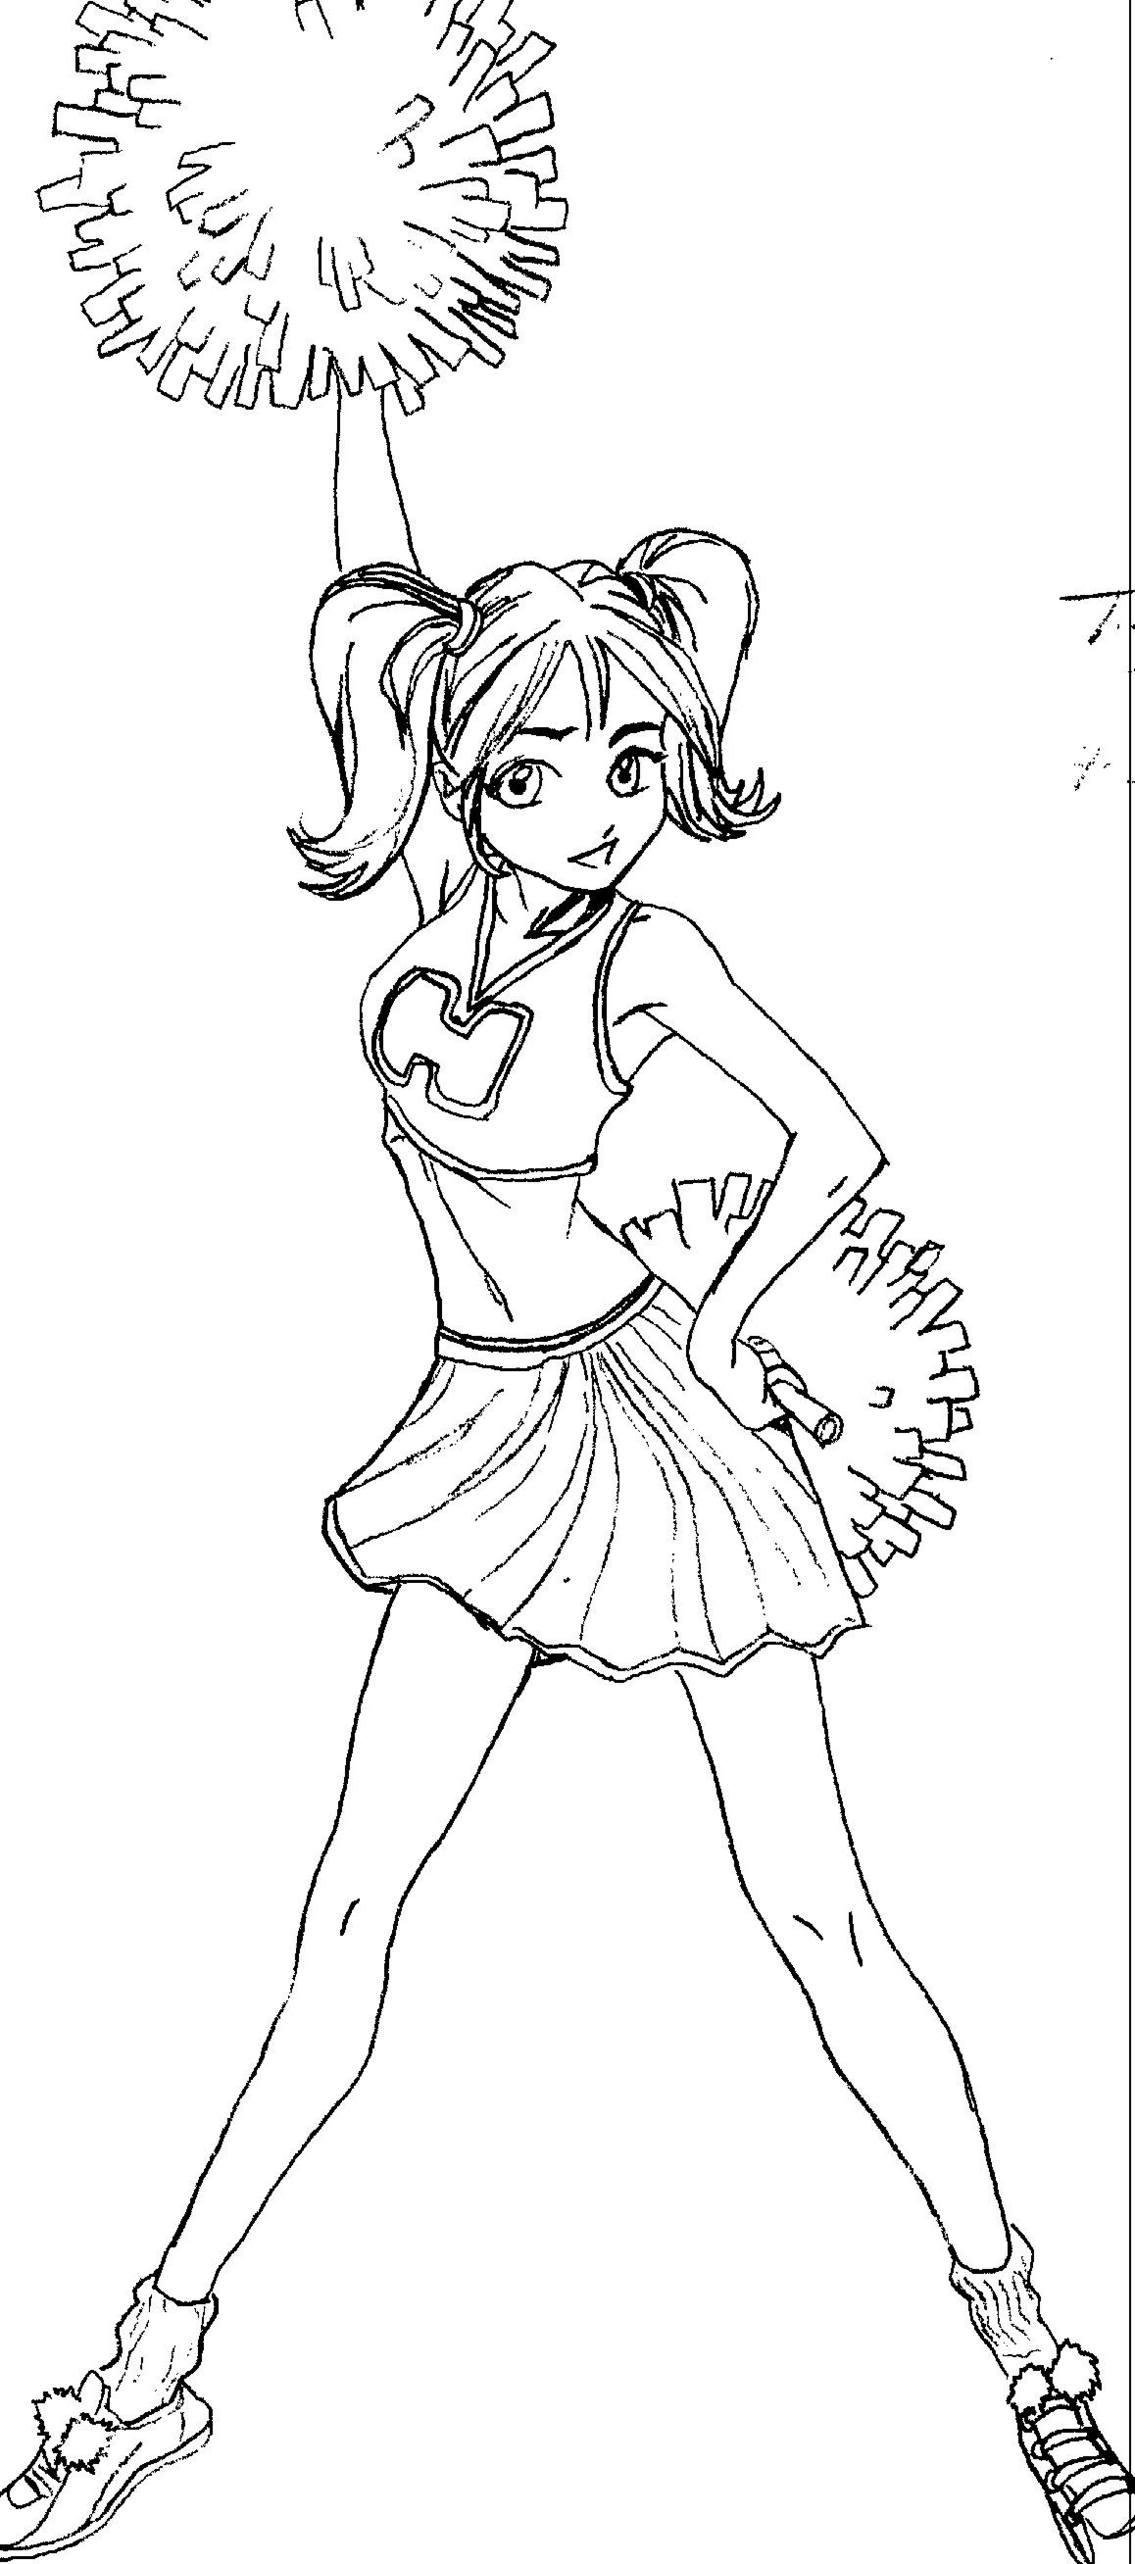 how to draw a cheerleader step by step free cheerleader drawing download free clip art free step how step draw a to cheerleader by